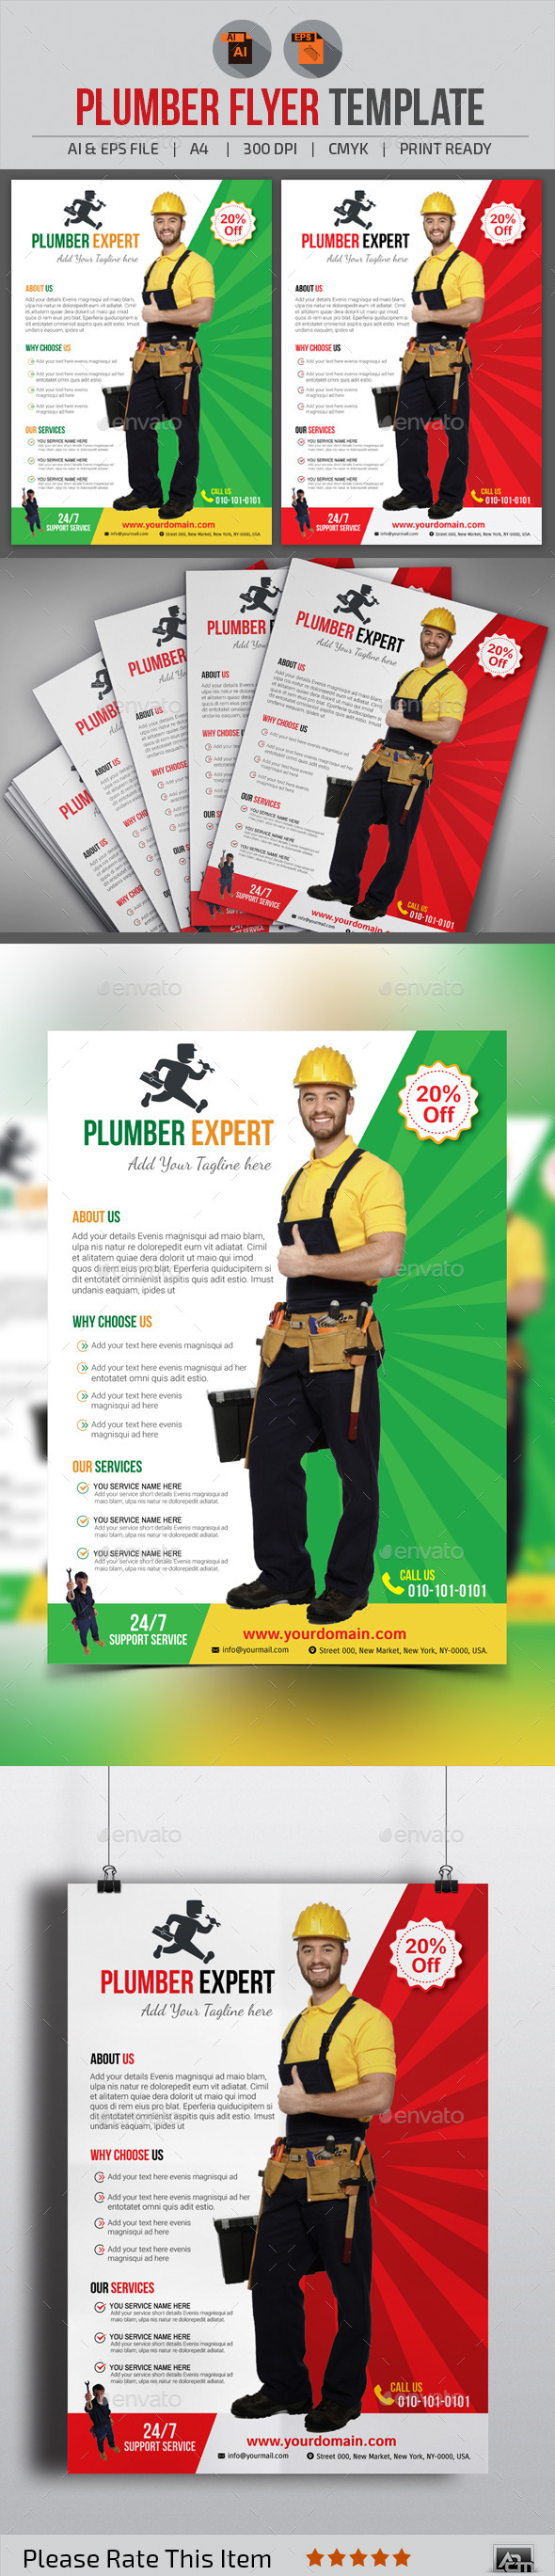 GraphicRiver Plumber Flyer Template 11324228